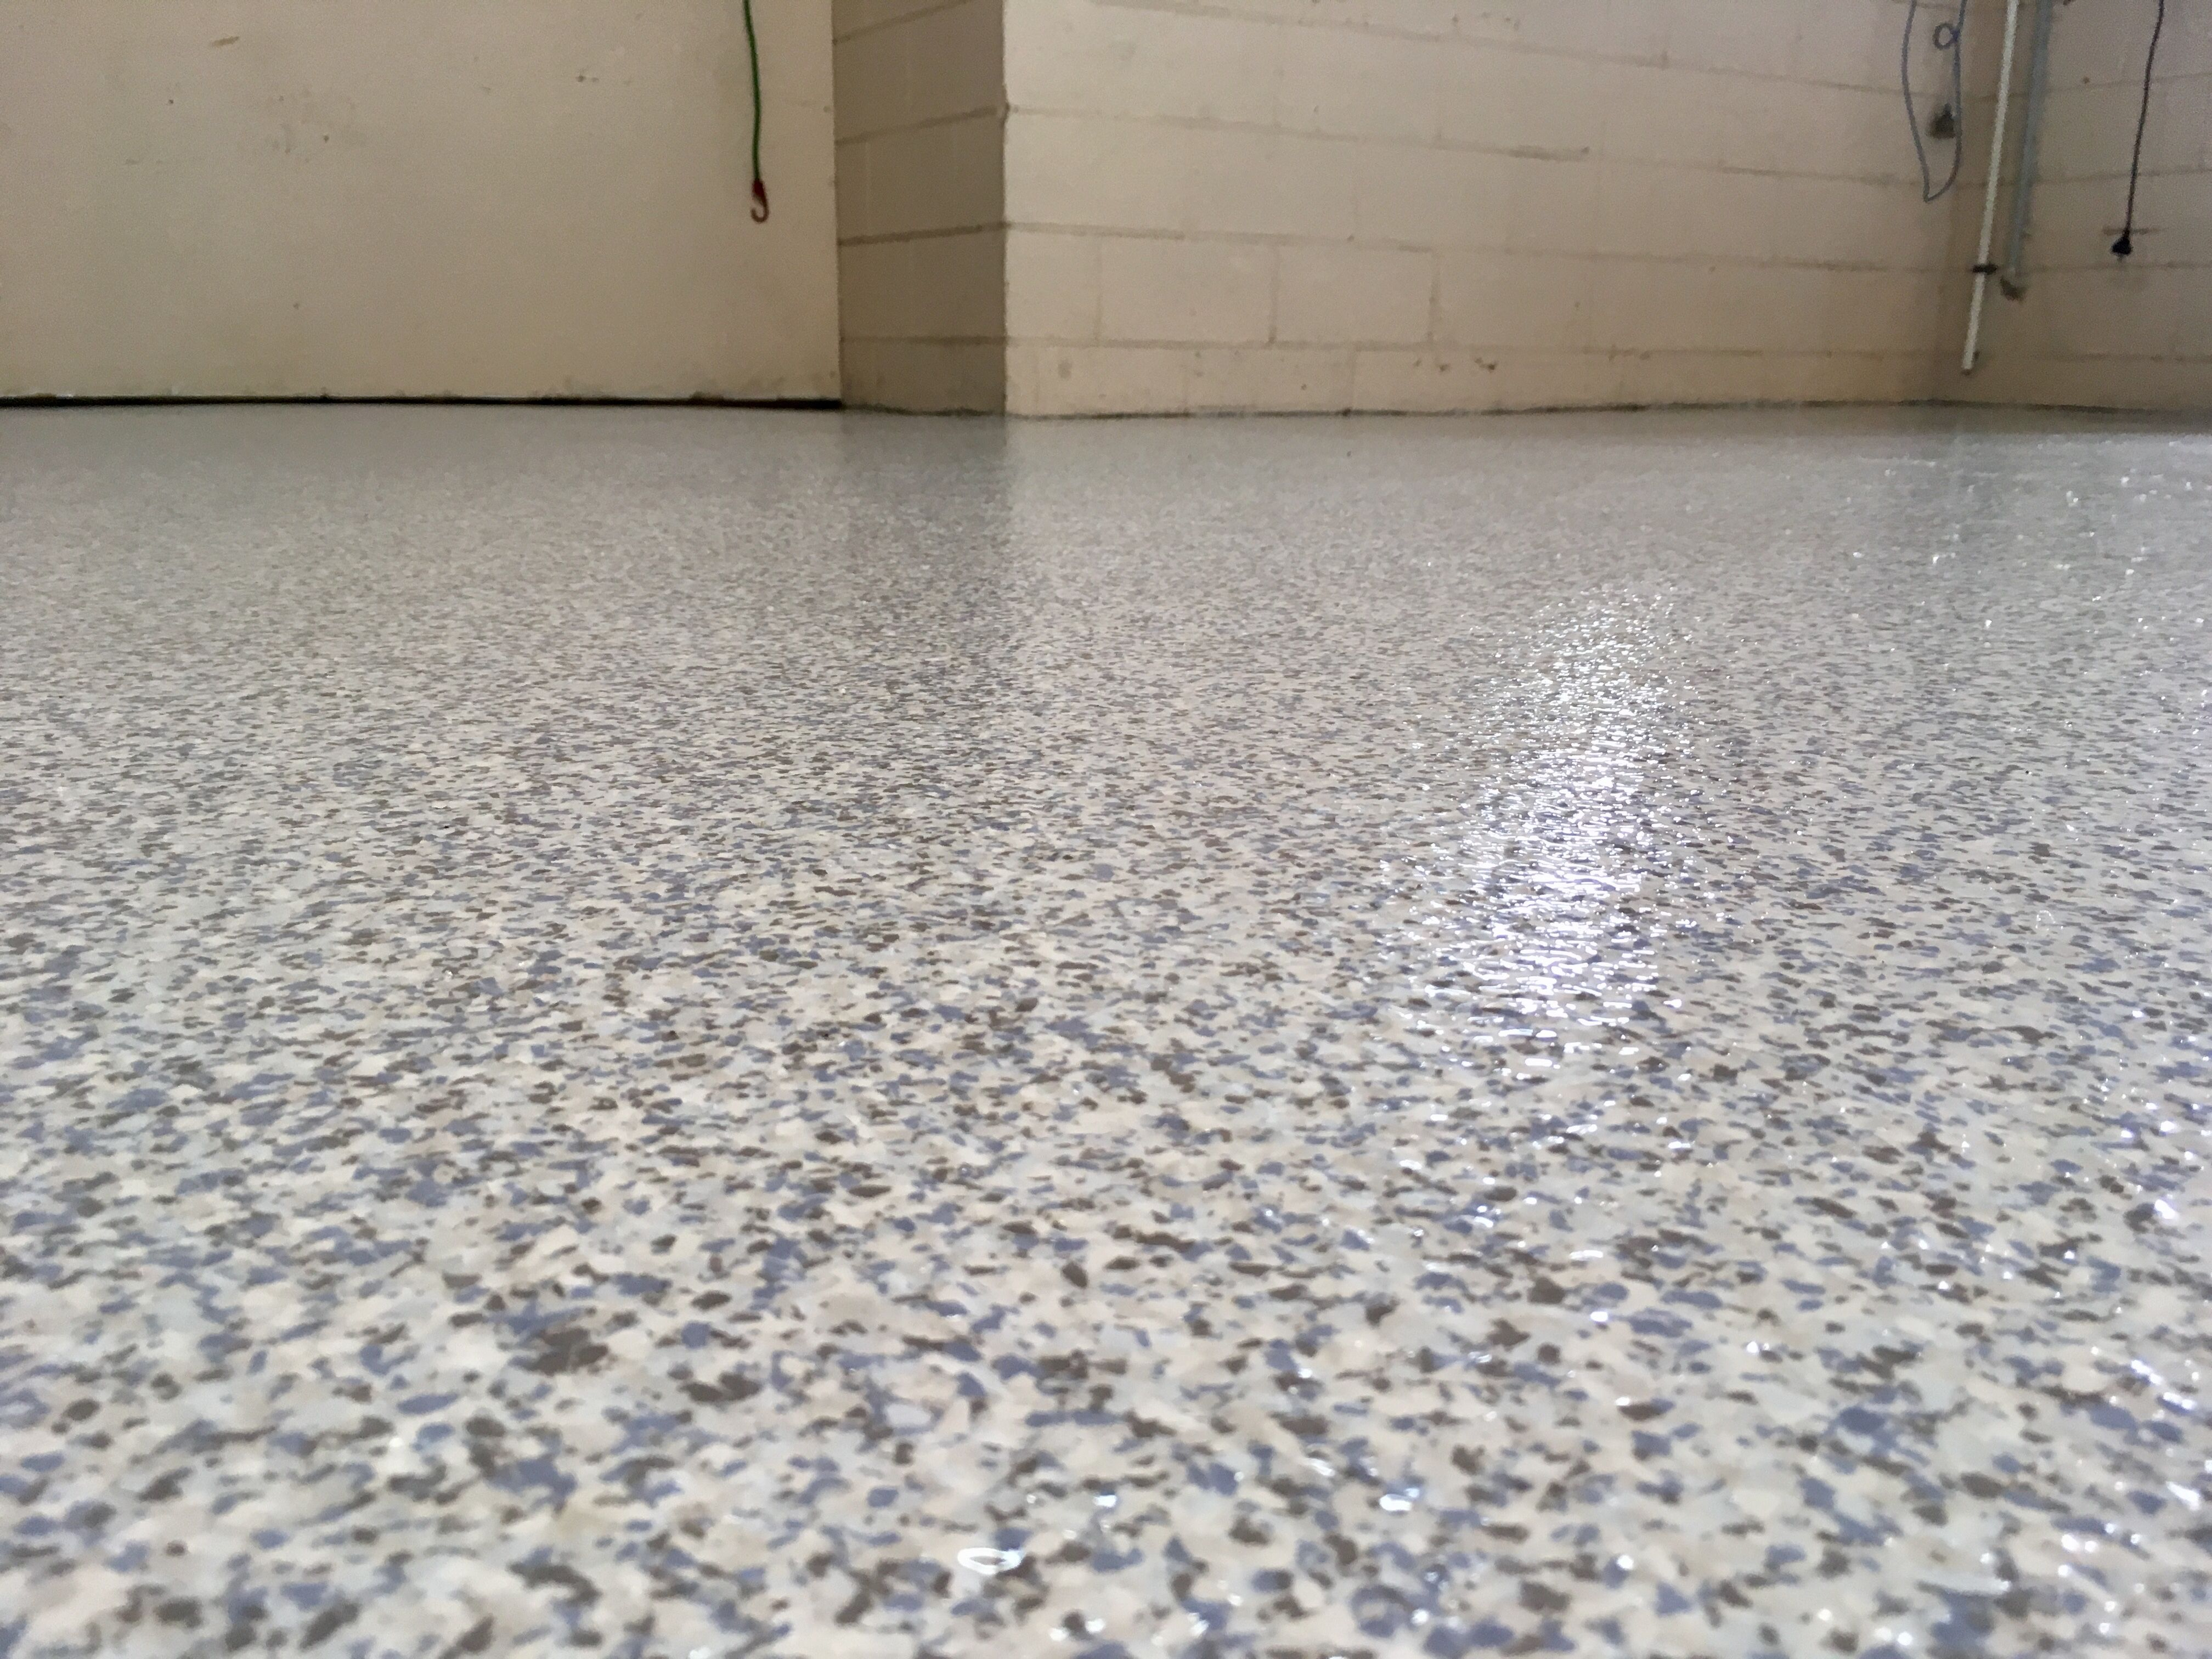 Frozen Epoxy Flake Over A White Base Coat By The Garage Floor Co Looks Amazing On Any Concrete Floor Garage Floor Flooring Concrete Floors